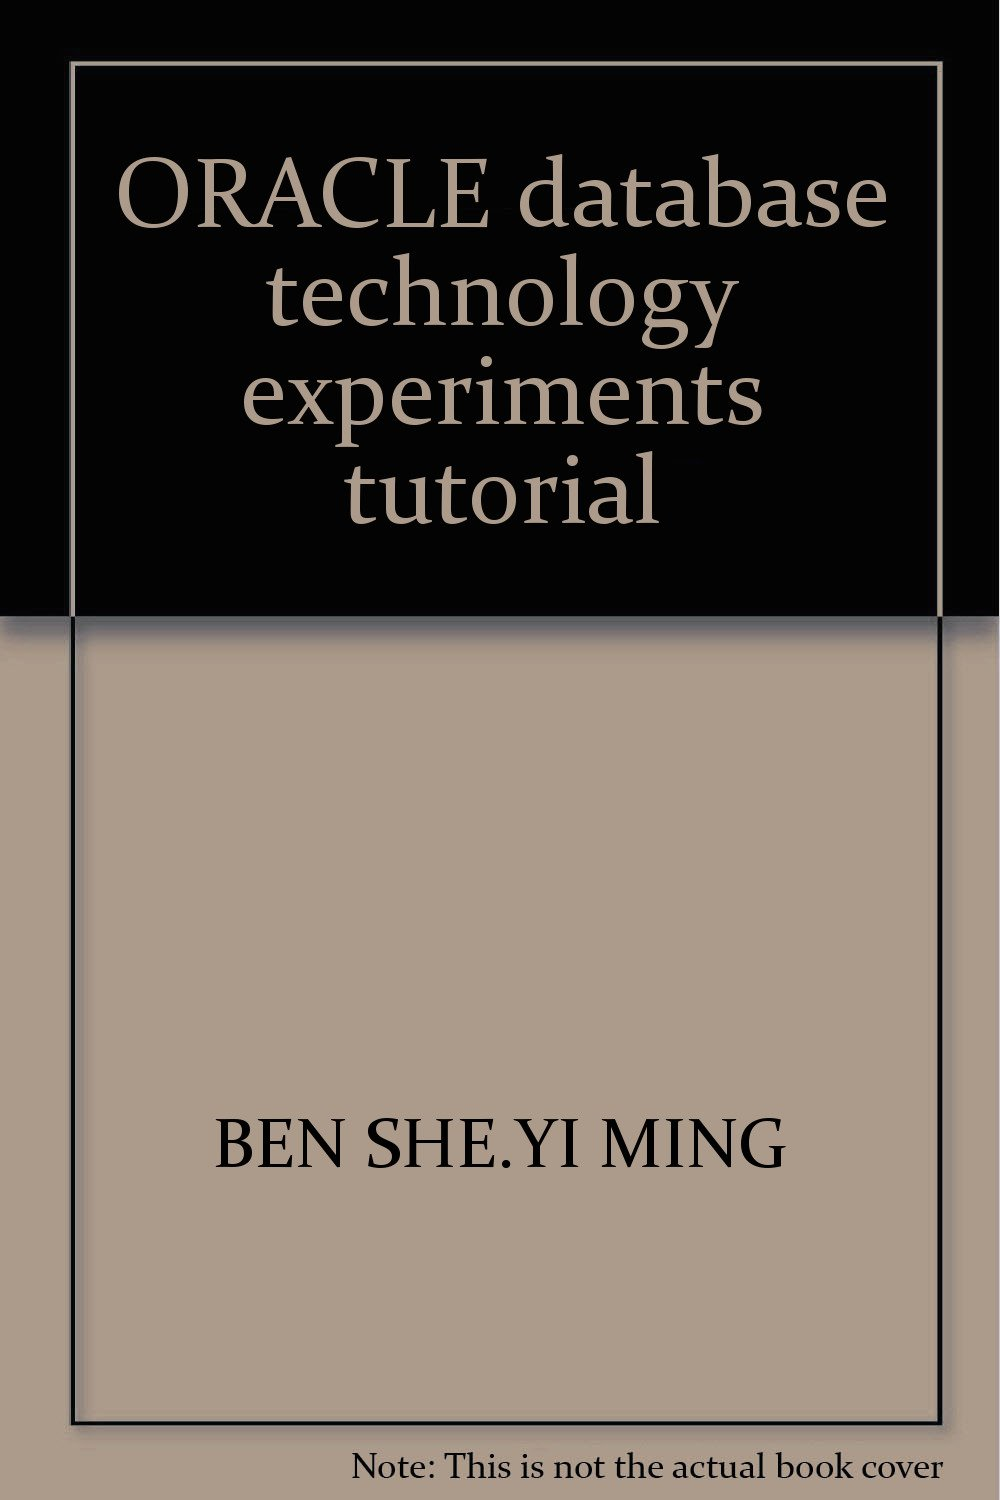 ORACLE database technology experiments tutorial: BEN SHE YI MING